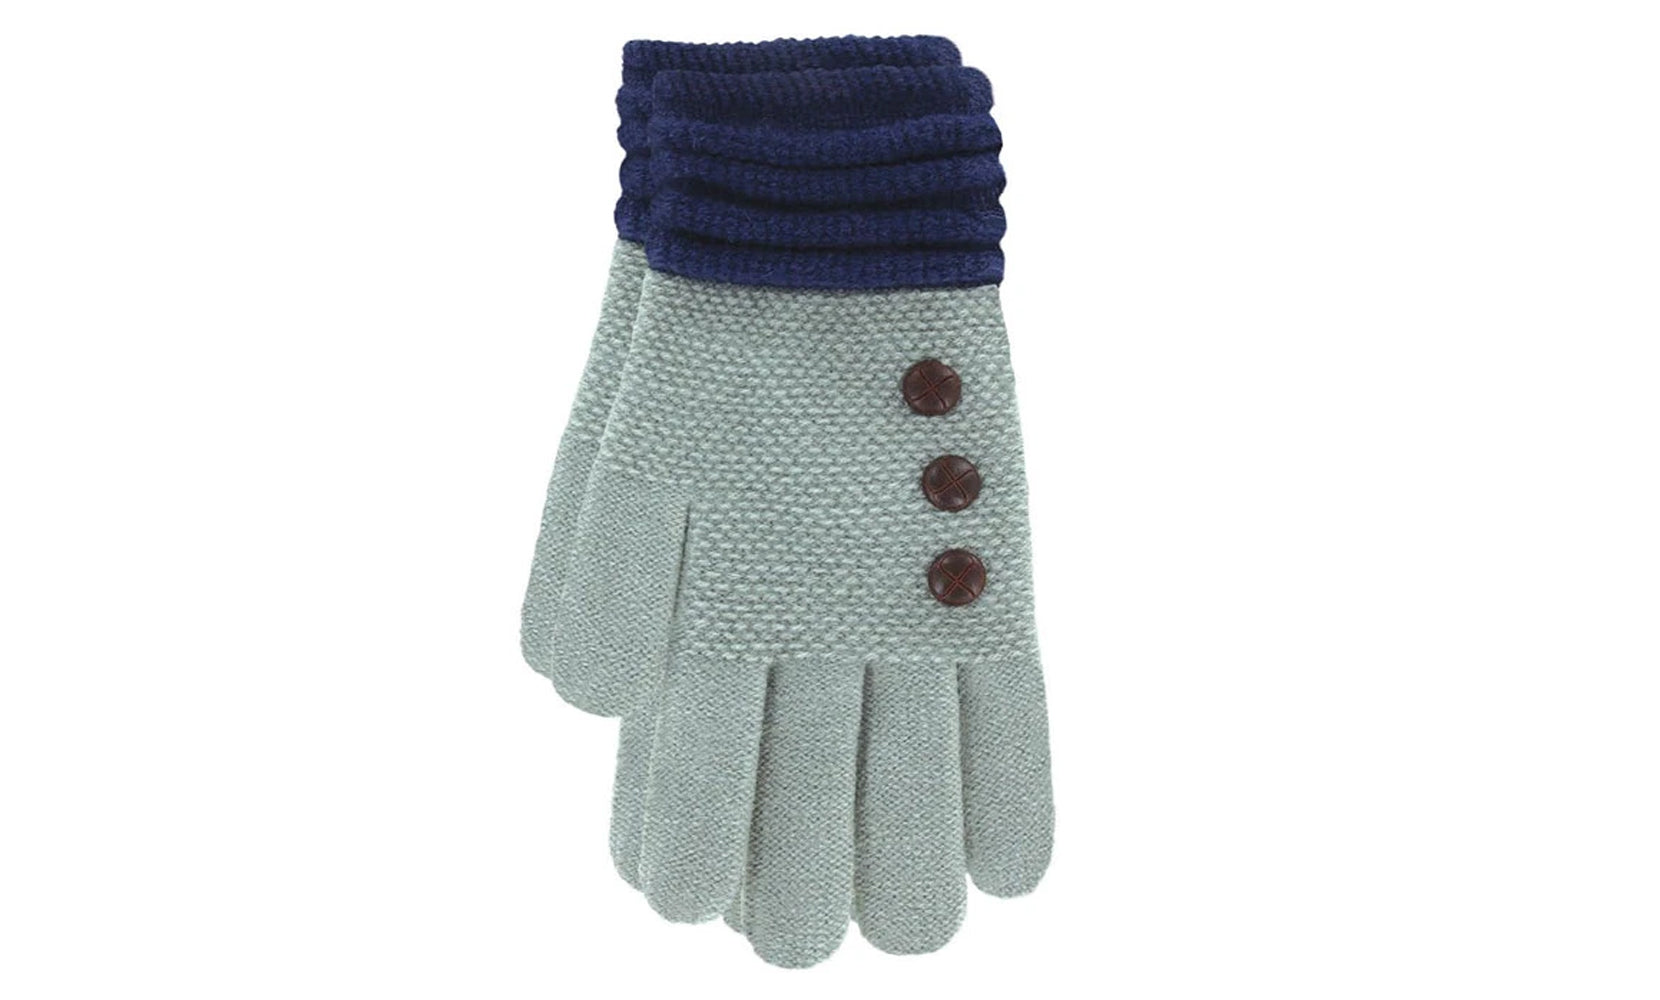 Britt's Knits Ultra-Soft Gloves